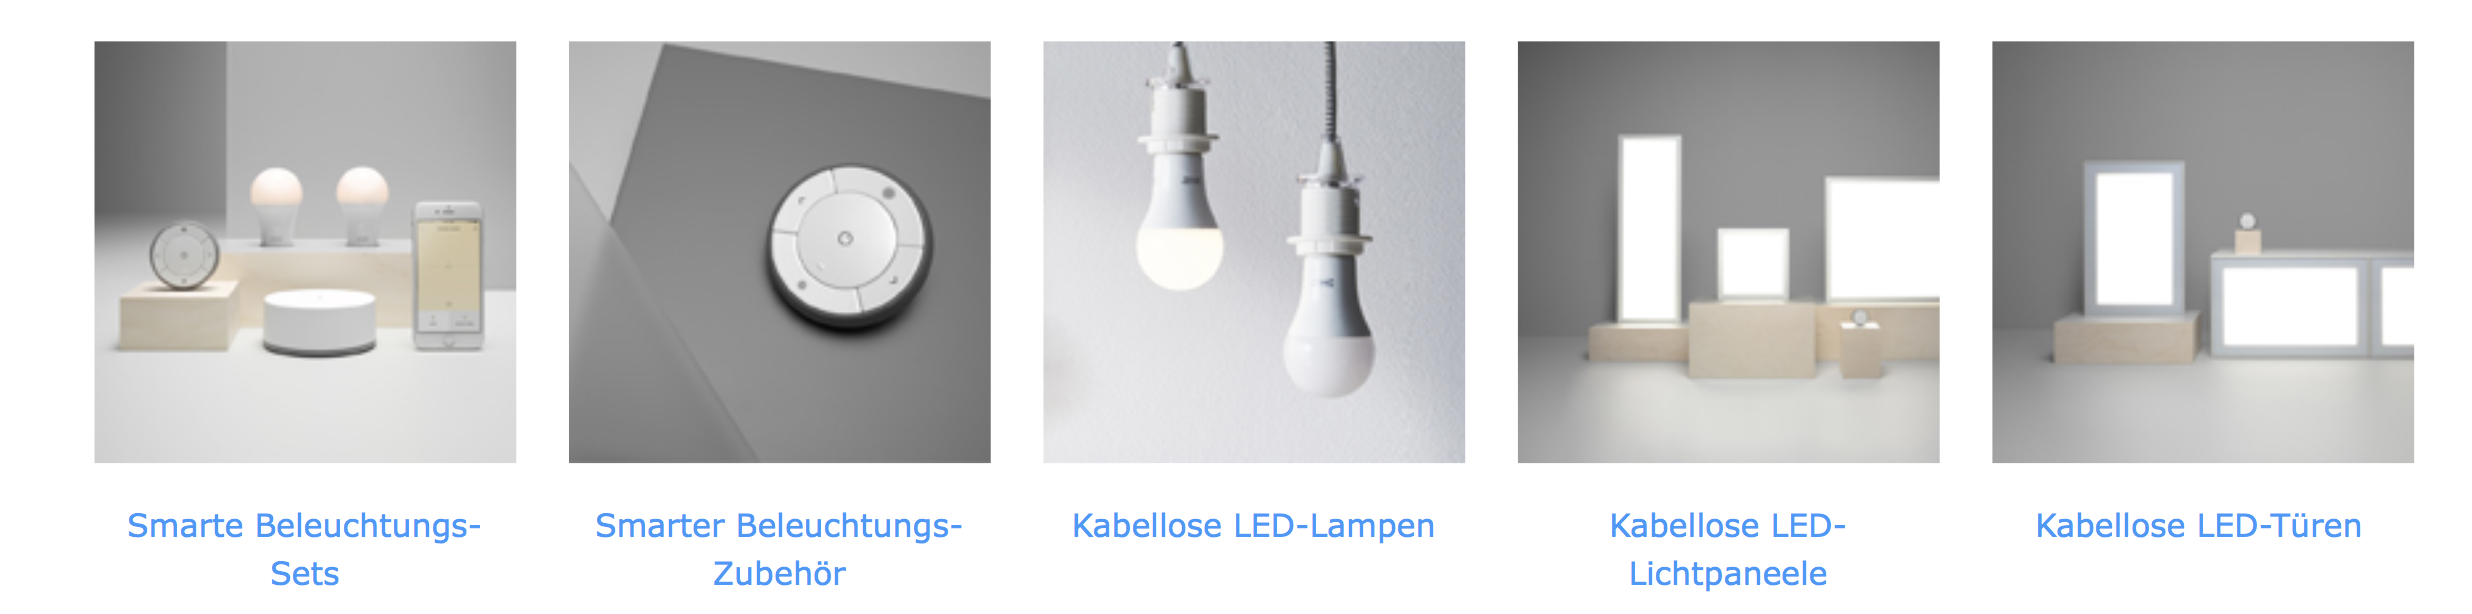 Ikea Trådfri: Smart-Home-Artikel künftig mit Apple HomeKit ...